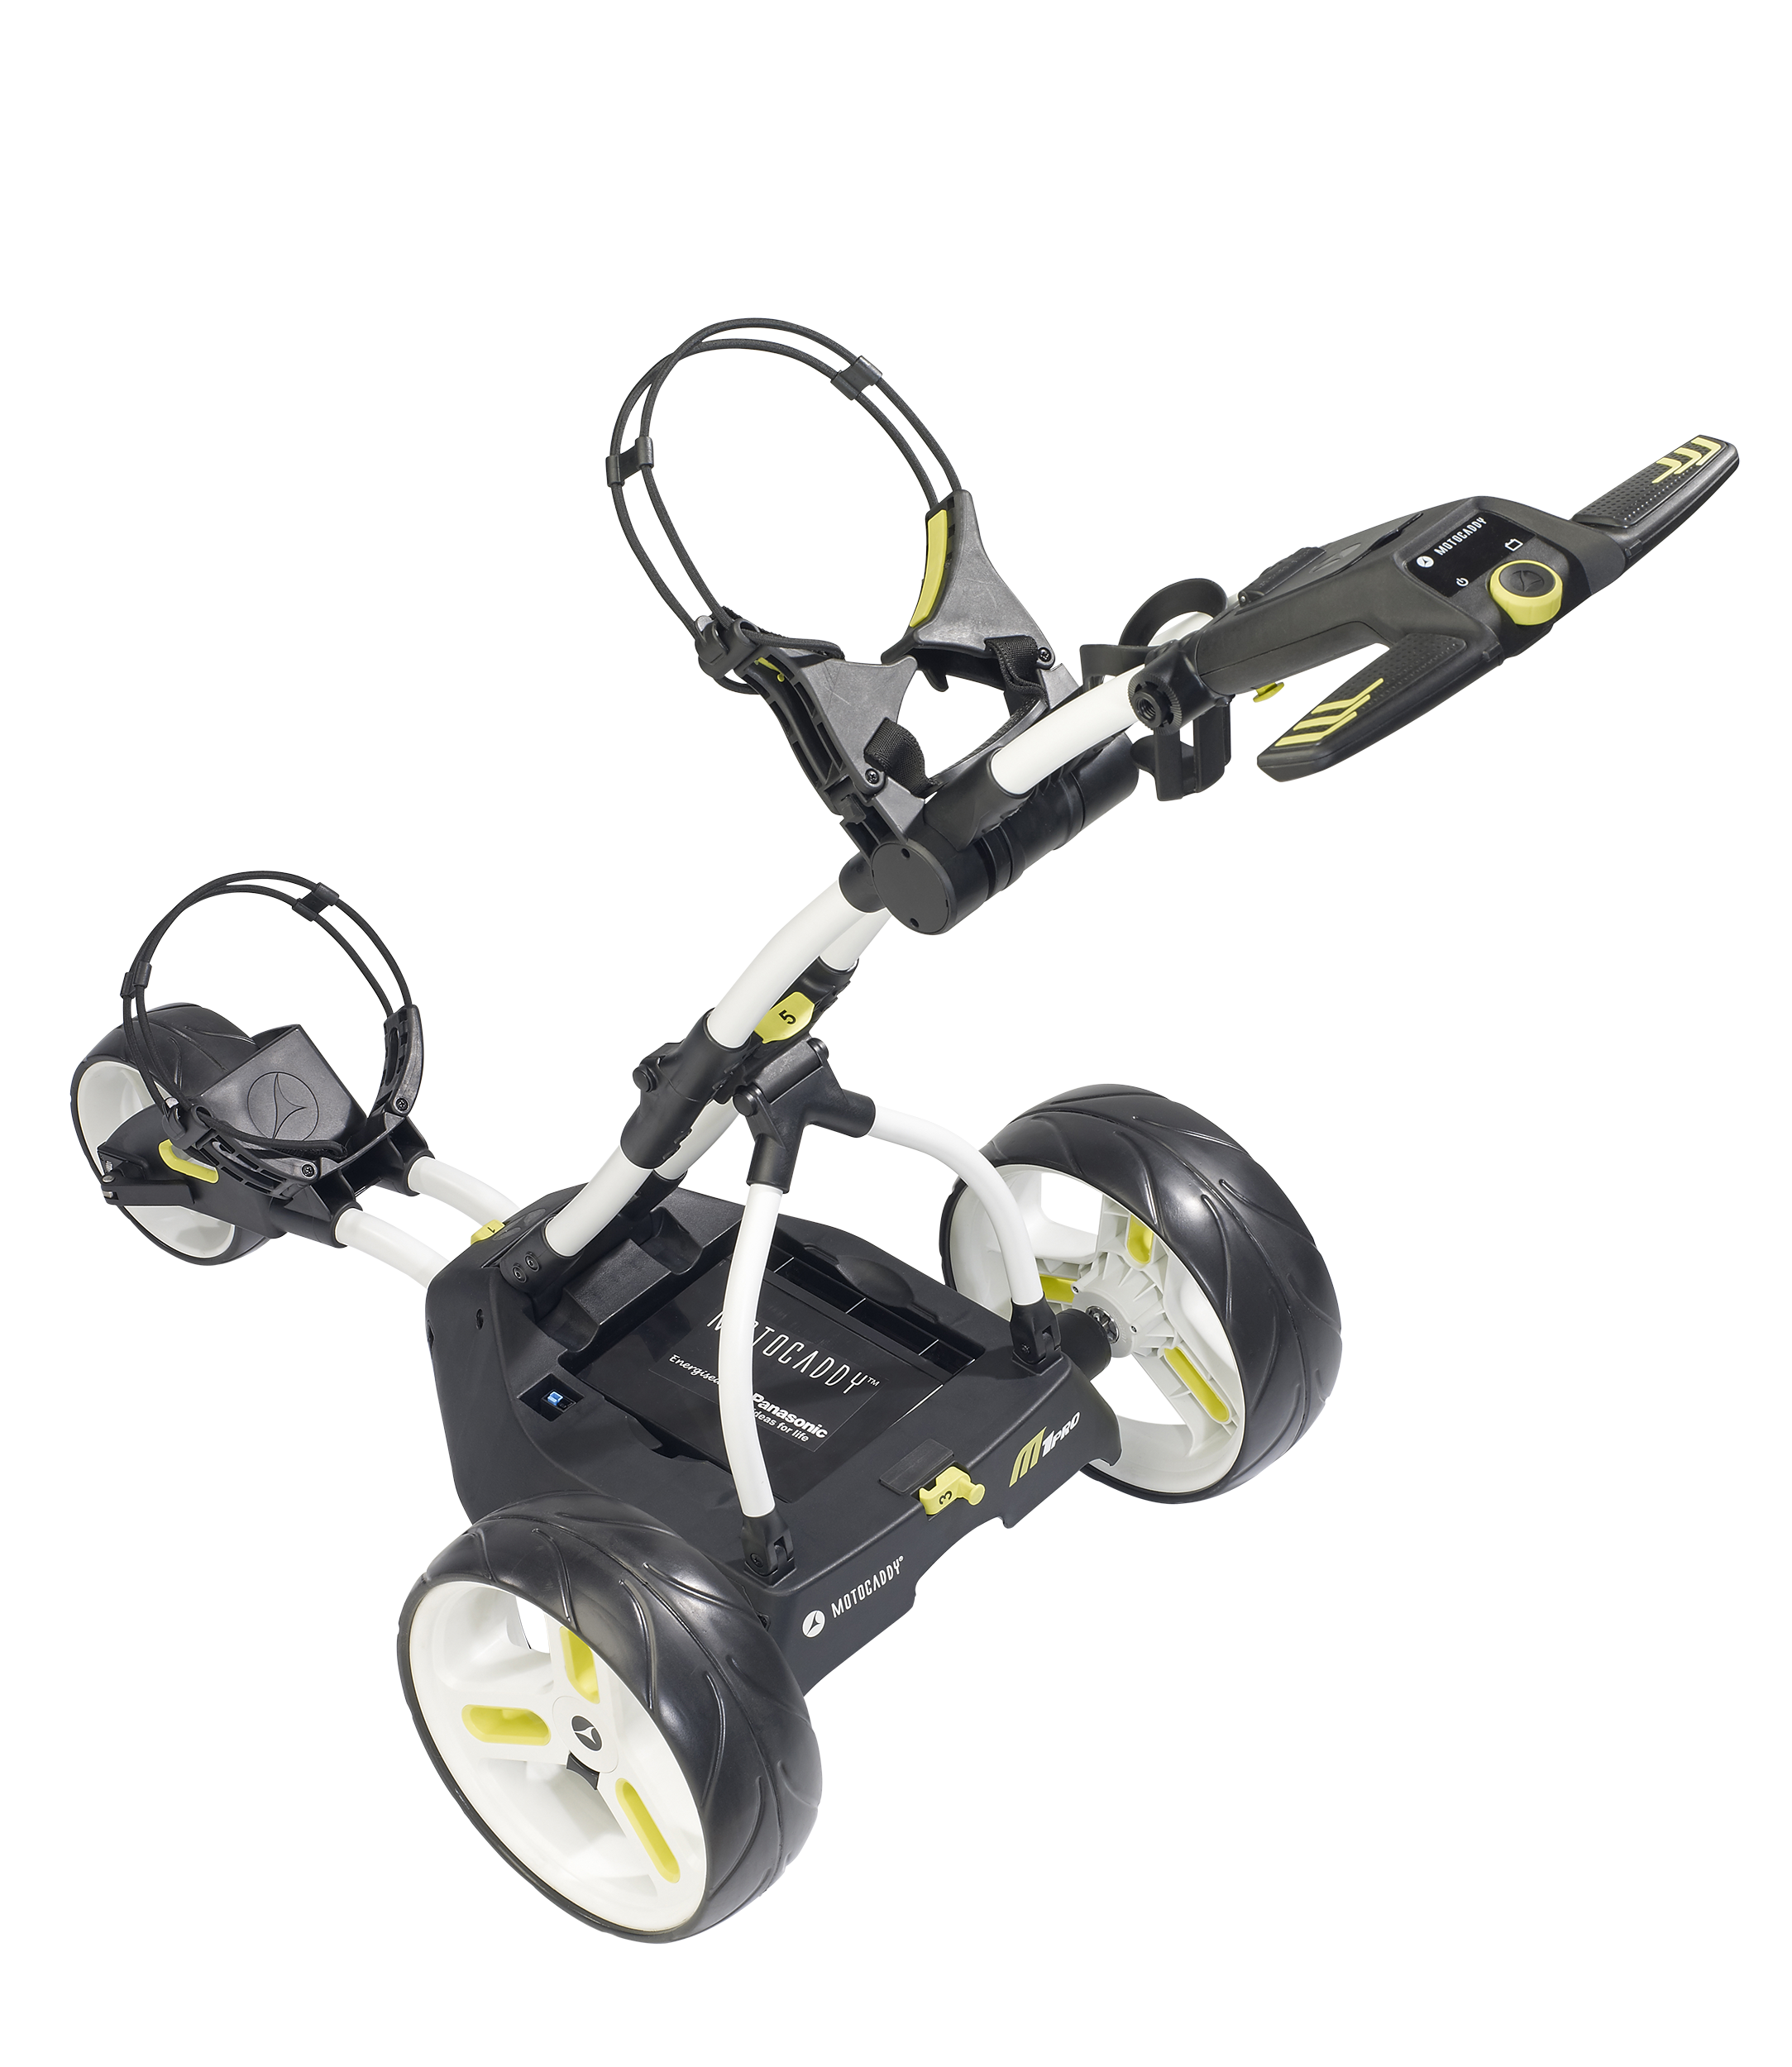 Review: Motocaddy M1 Pro